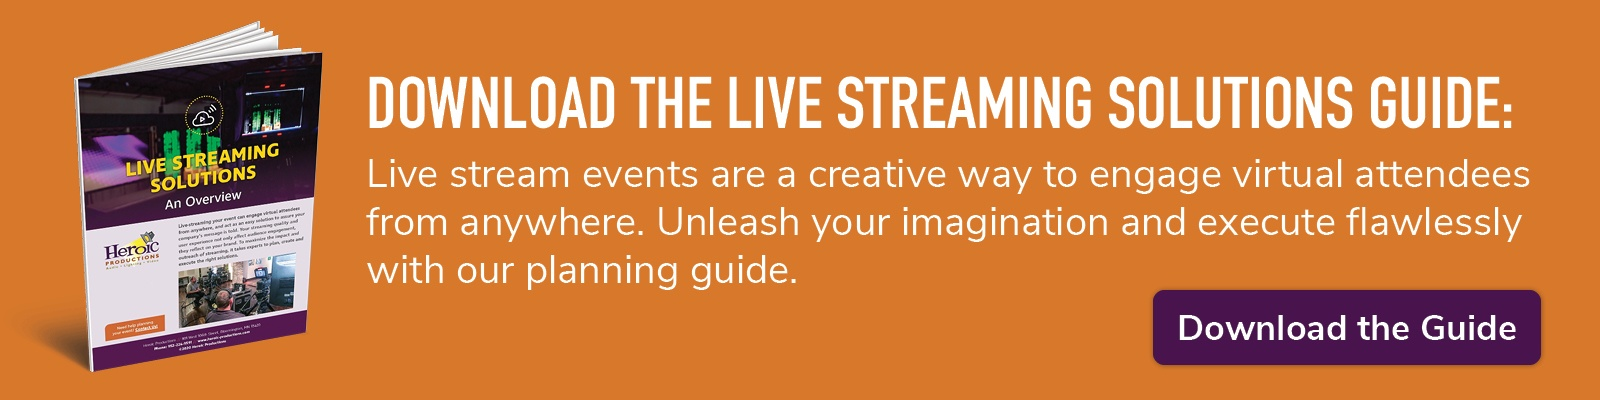 download the live streaming solutions guide; download the guide